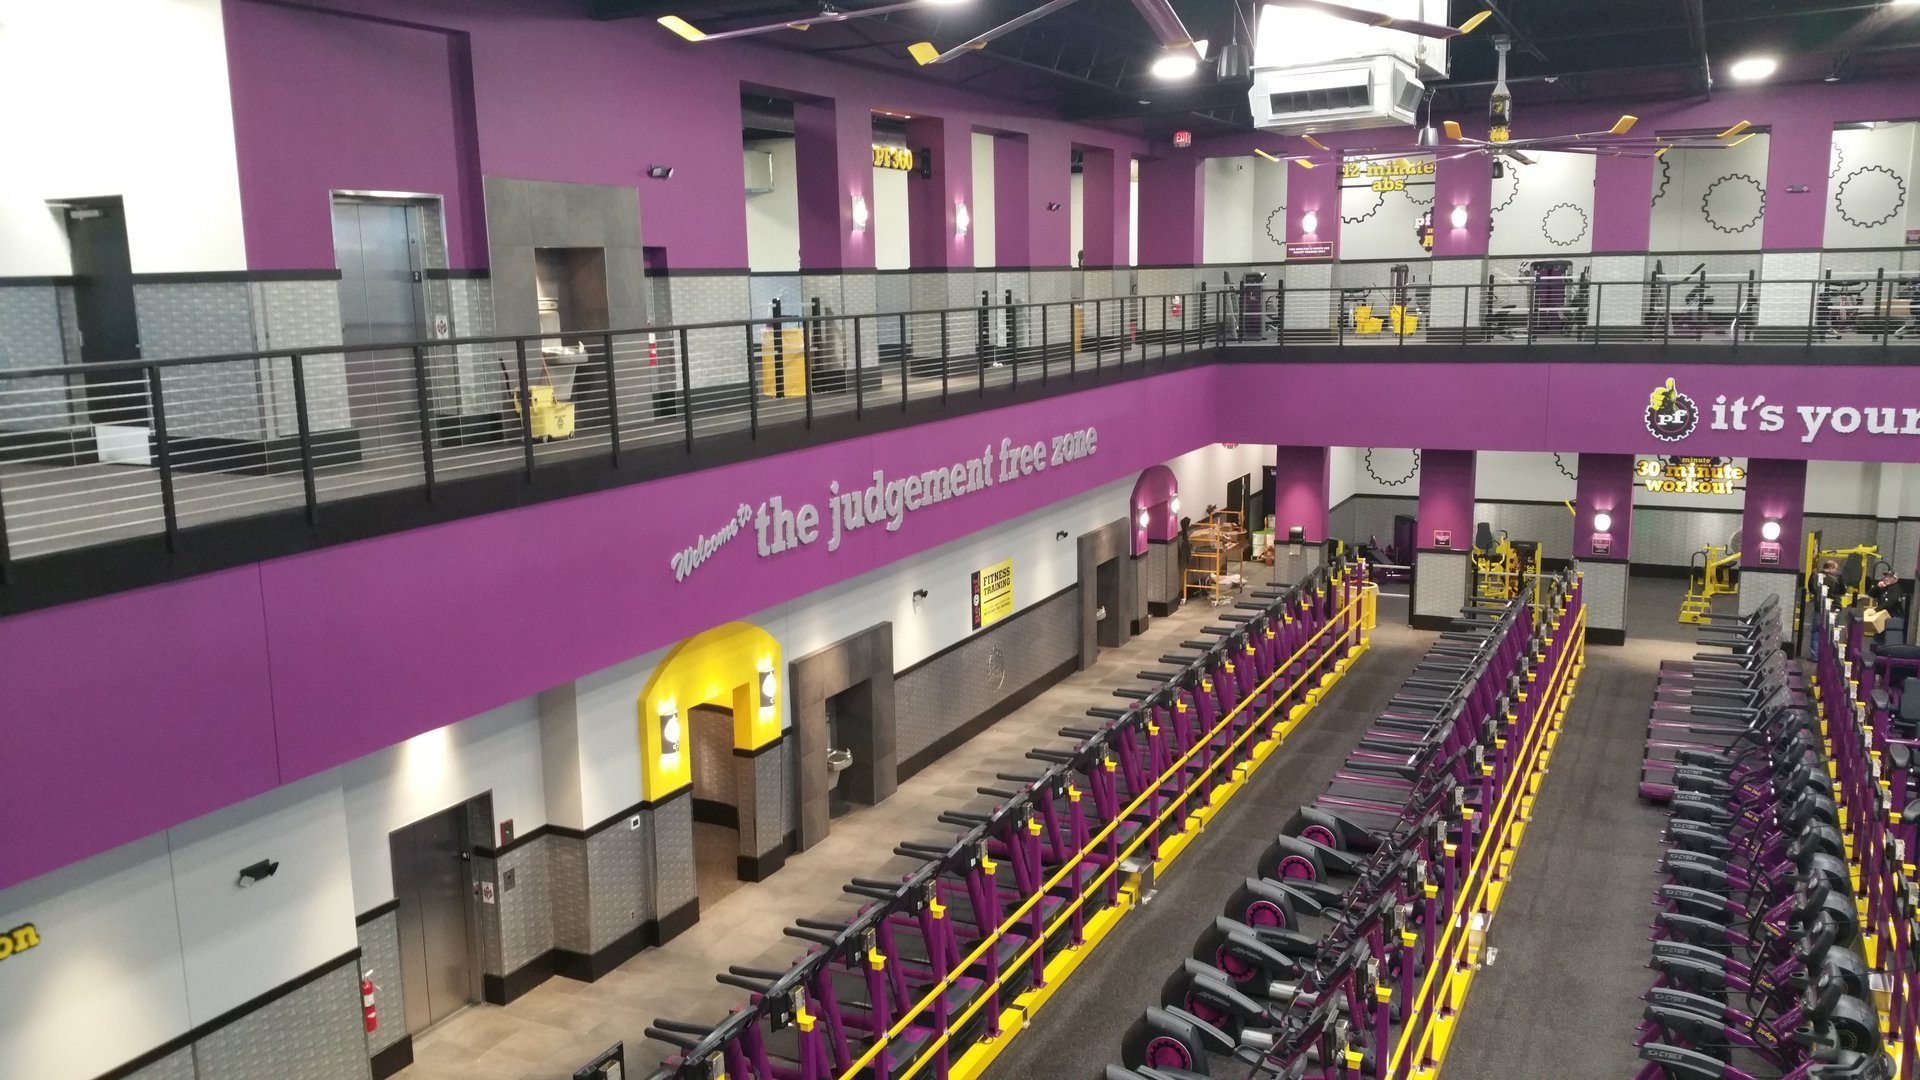 Planet Fitness - Welcome to the Judgment Free Zone